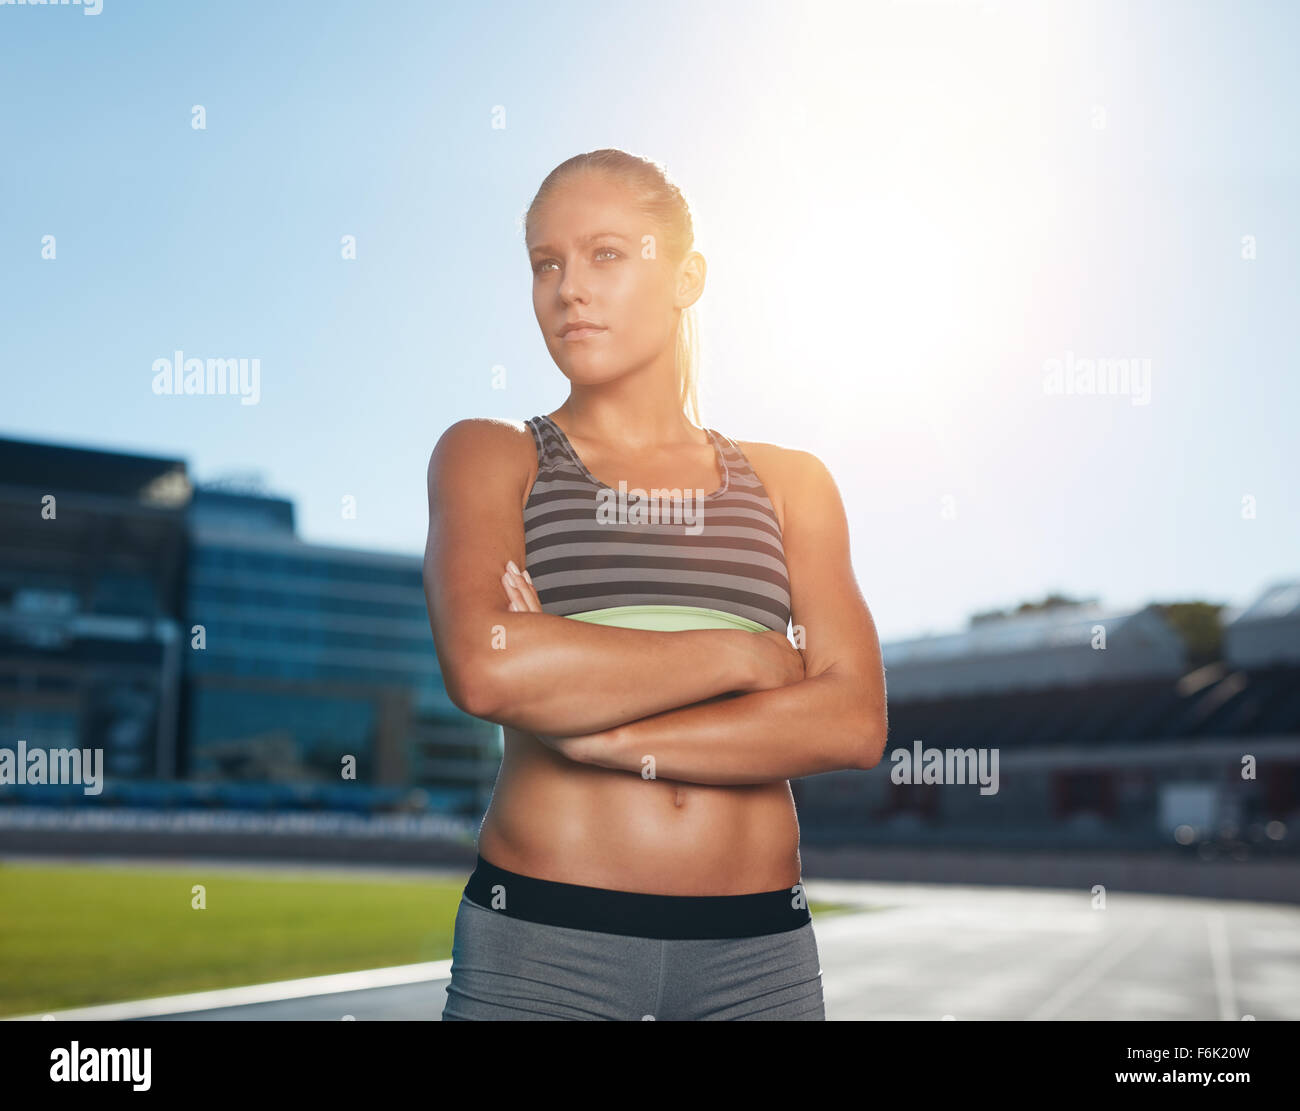 Portrait of fit young woman in sportswear standing on racetrack with her hands folded and looking away. Professional - Stock Image